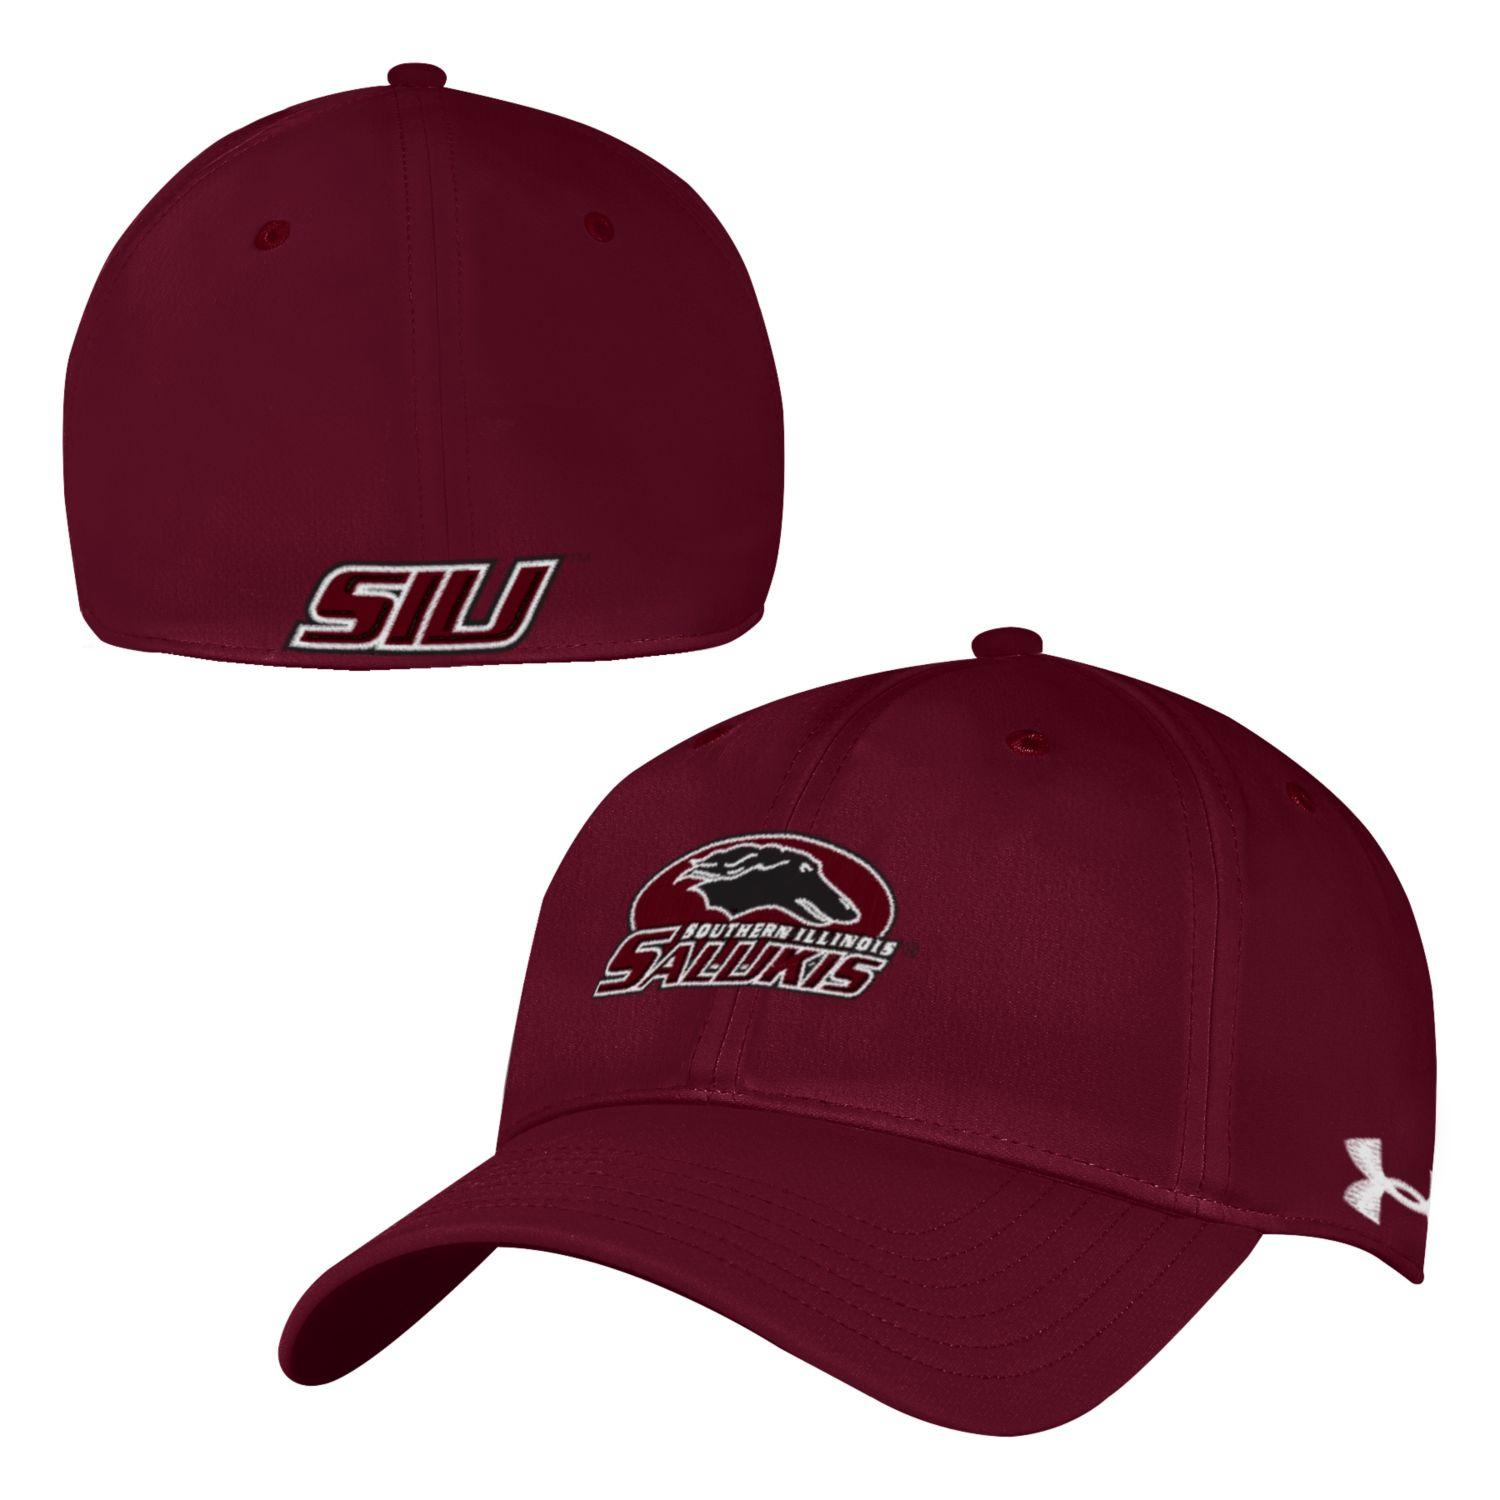 Image for the UA® SALUKIS MAROON MENS RENEGADE STRETCH FIT HAT - BLACK & MAROON AVAILABLE product